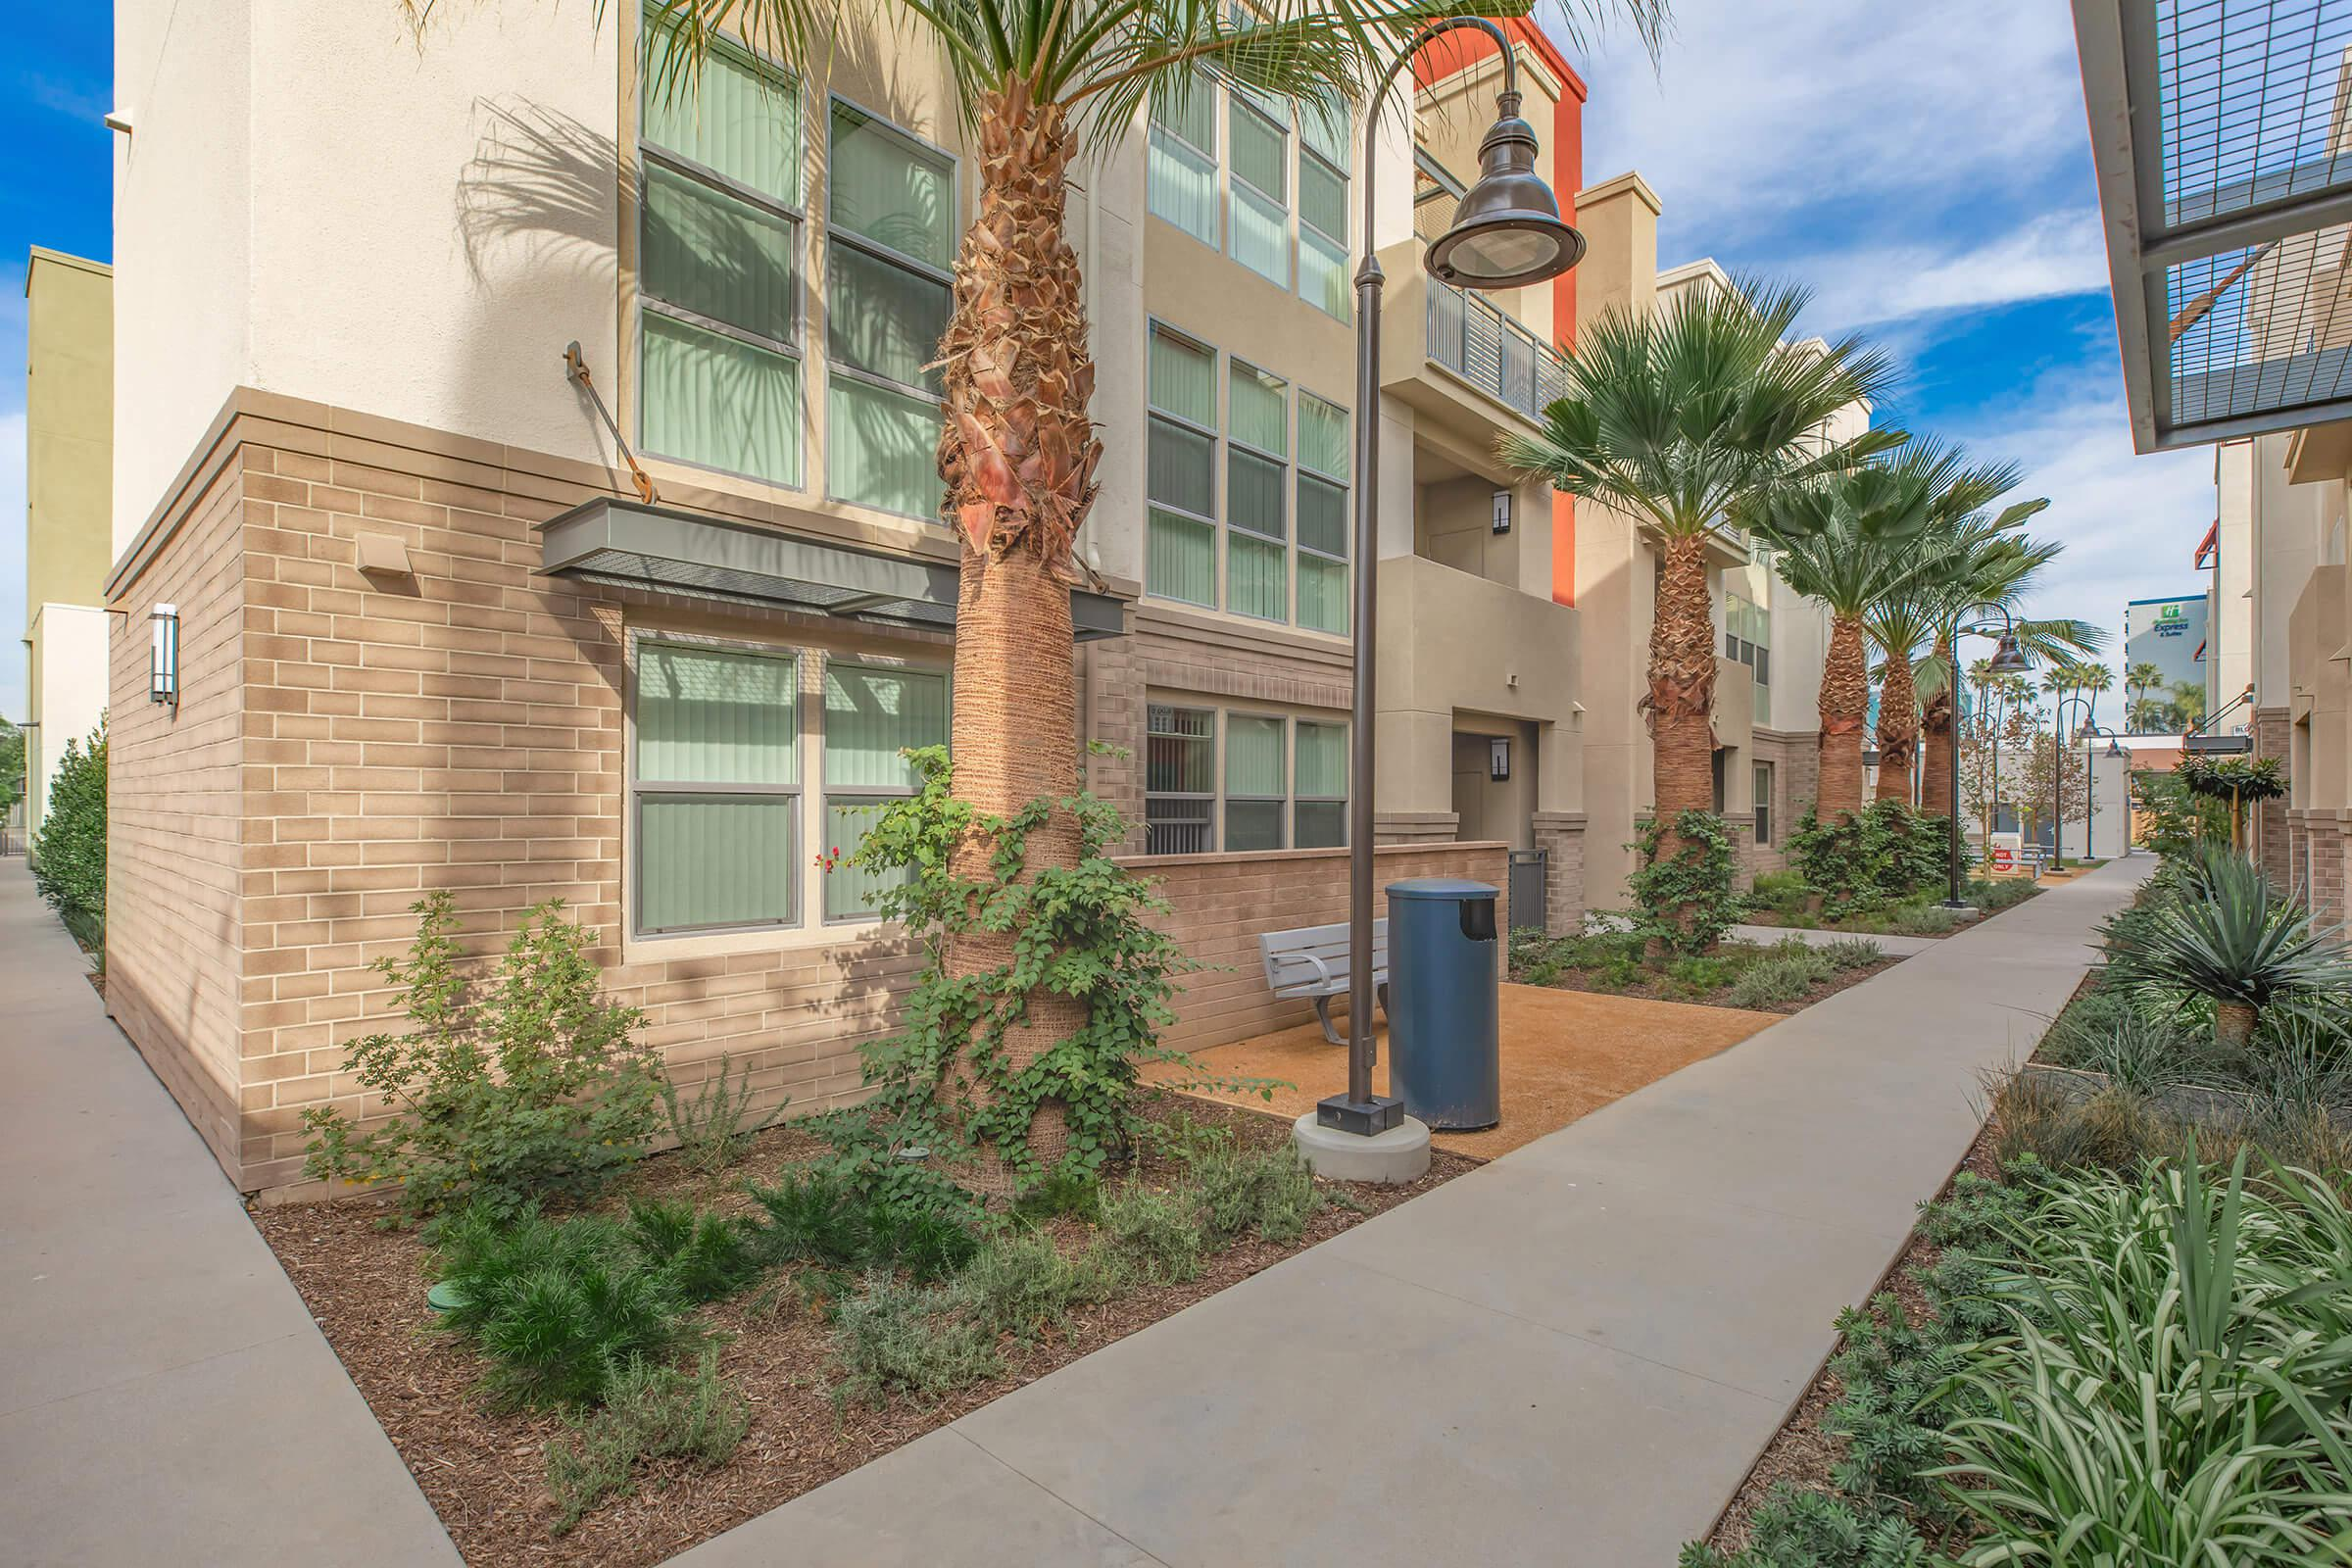 Image of First Street Apartments in Santa Ana, California